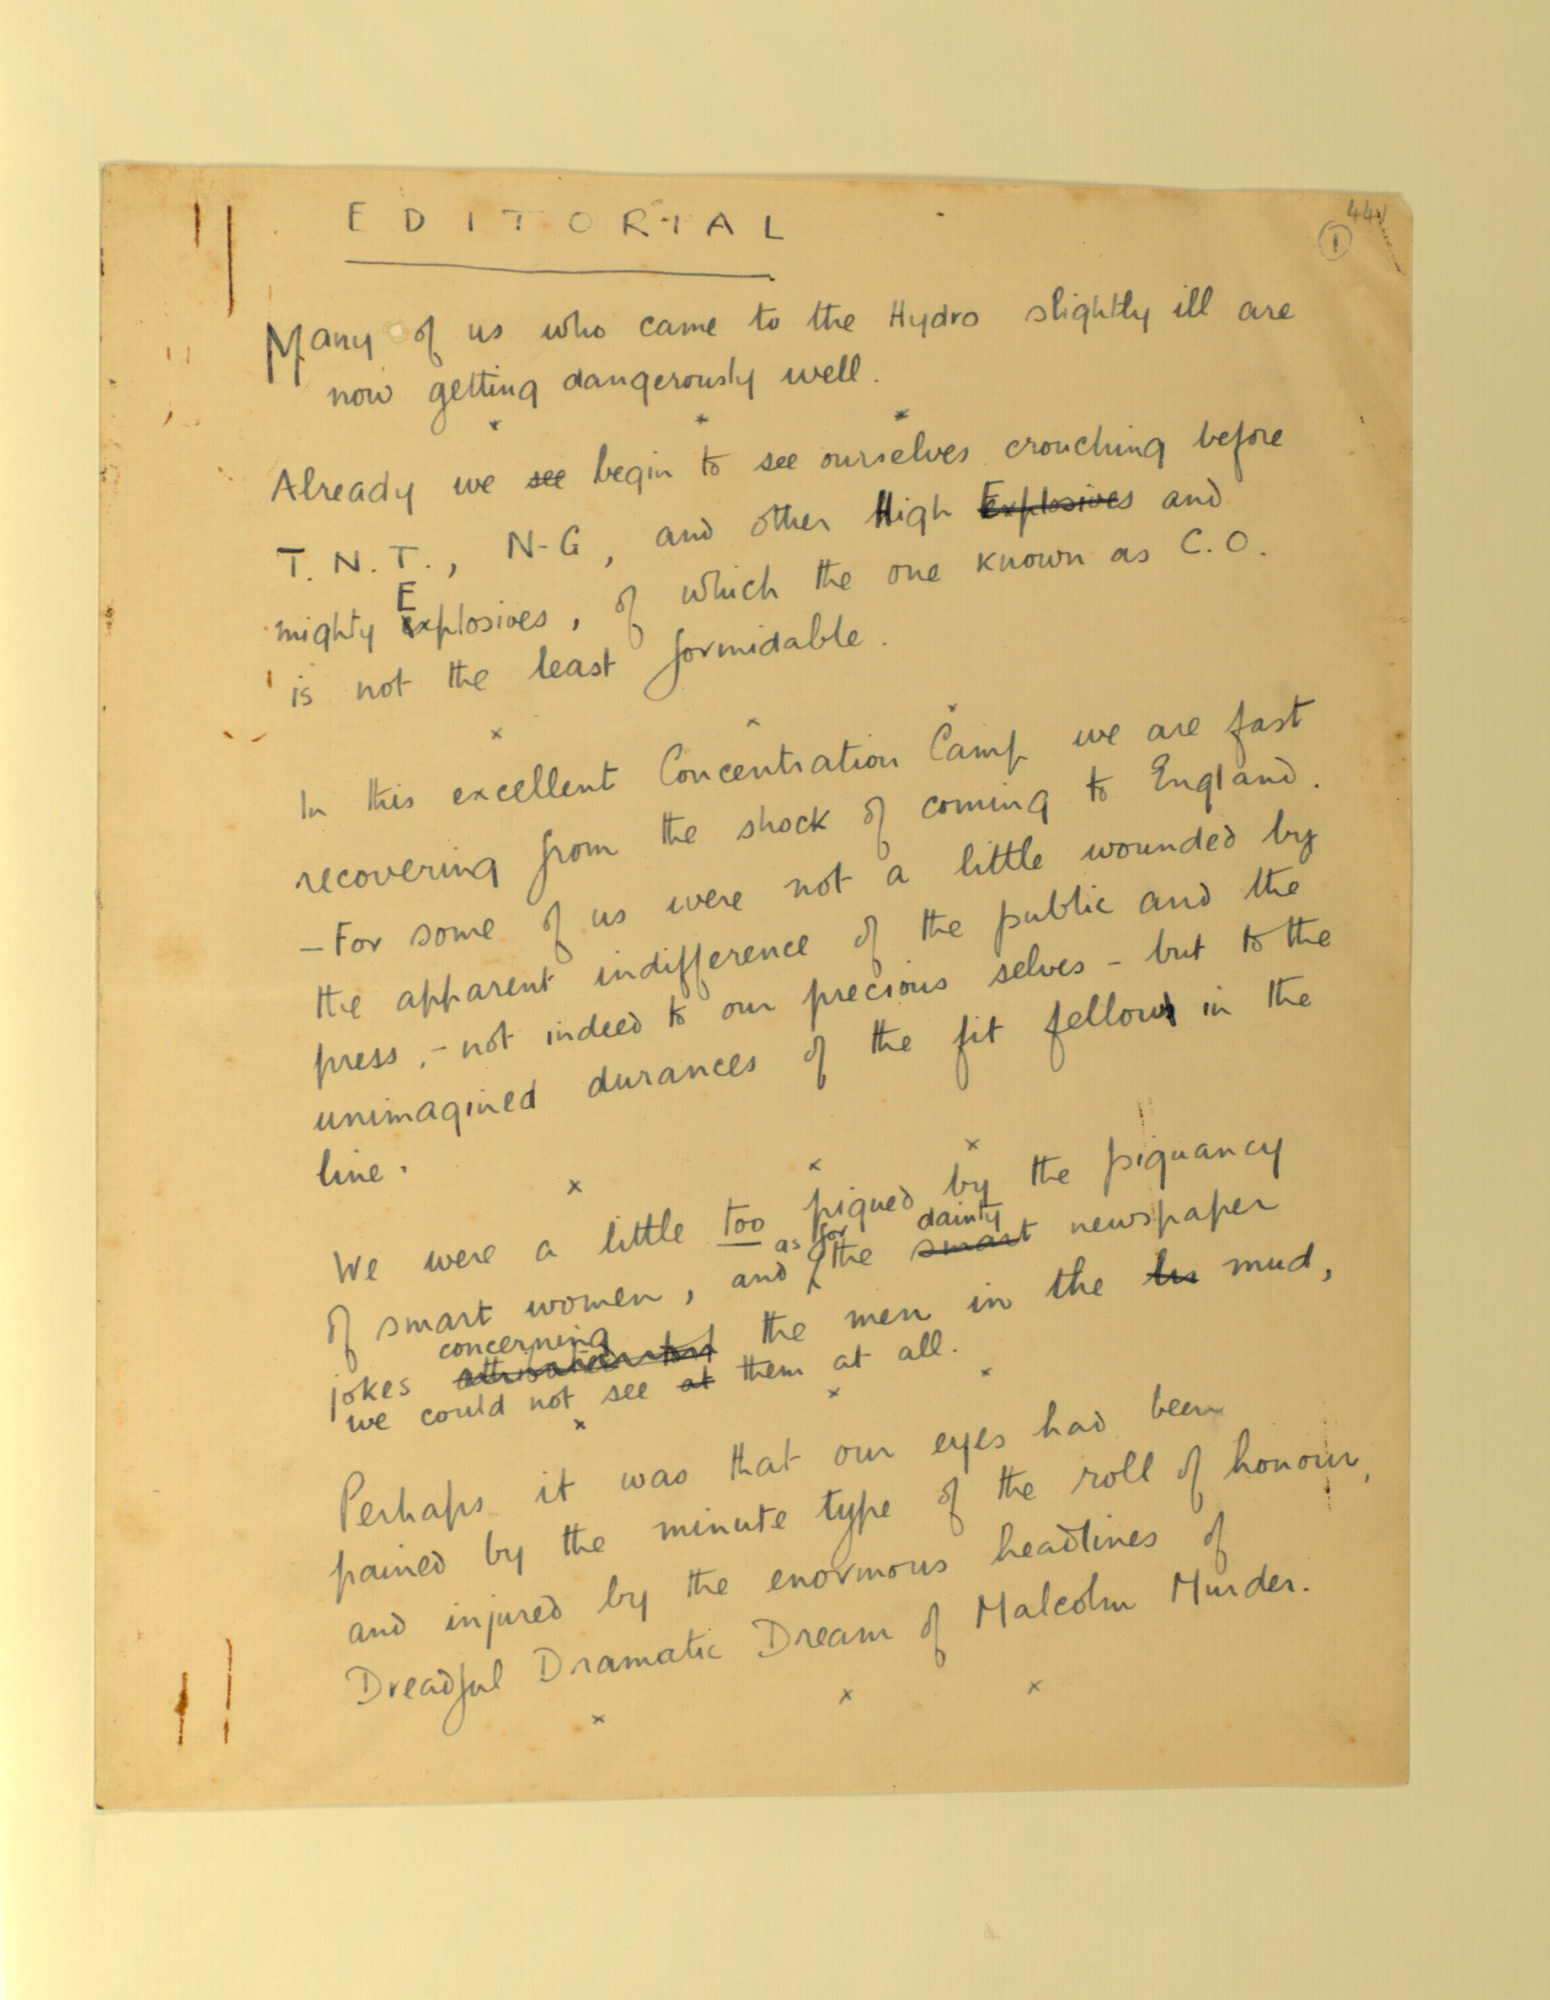 Wilfred Owen's draft editorial for The Hydra, 1 September 1917